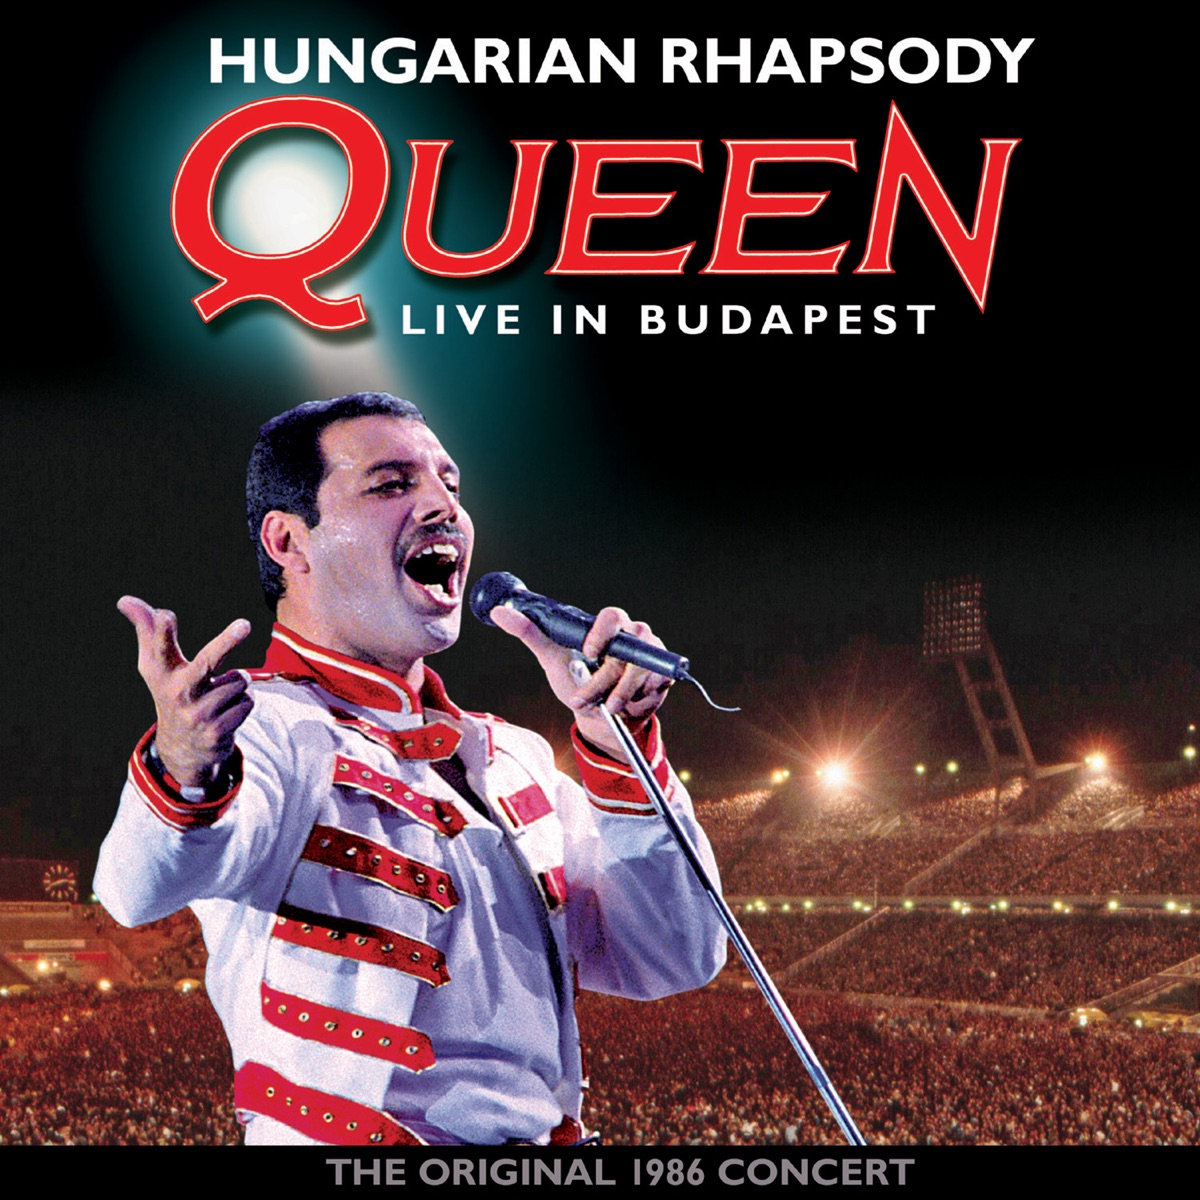 Hungarian Rhapsody Live In Budapest 1986 Queen CD cover